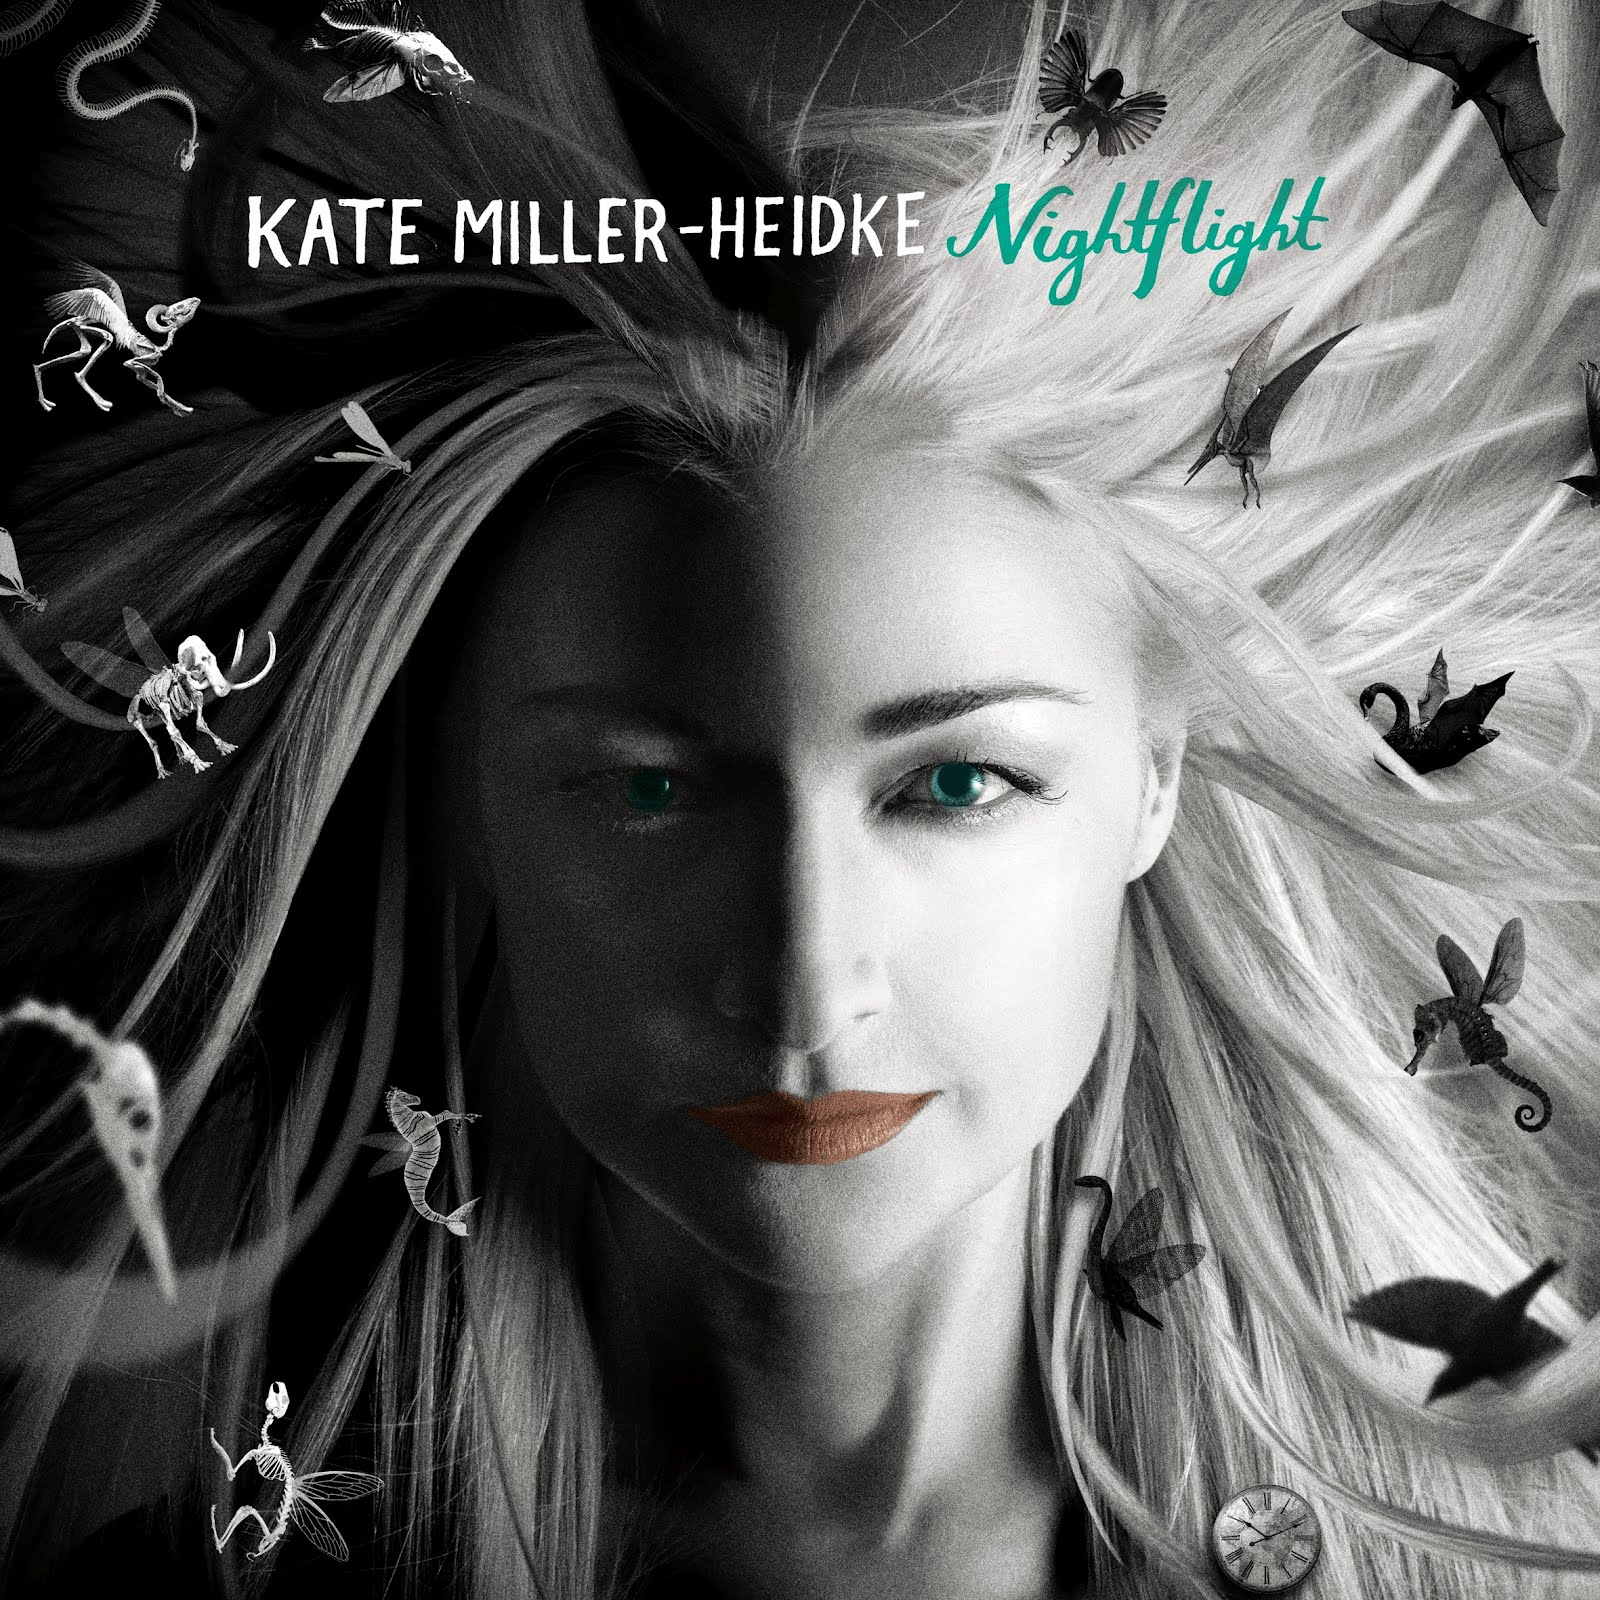 Kate-Miller-Heidke-Nightflight-cover-art-packshot